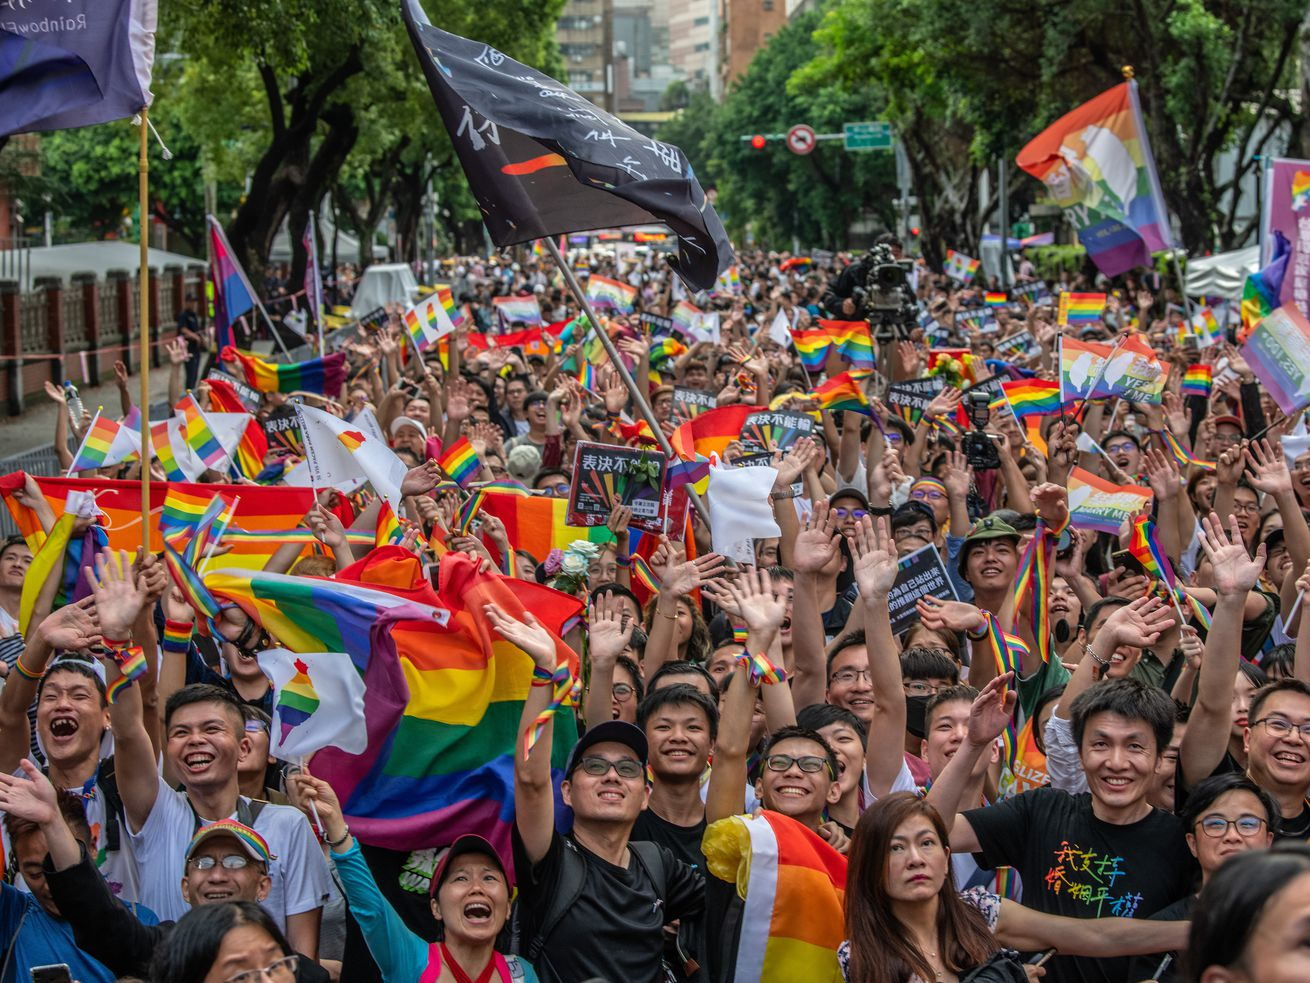 Celebrations in Taipei, Taiwan after Taiwan's parliament passed legislation to legalize same-sex marriage.